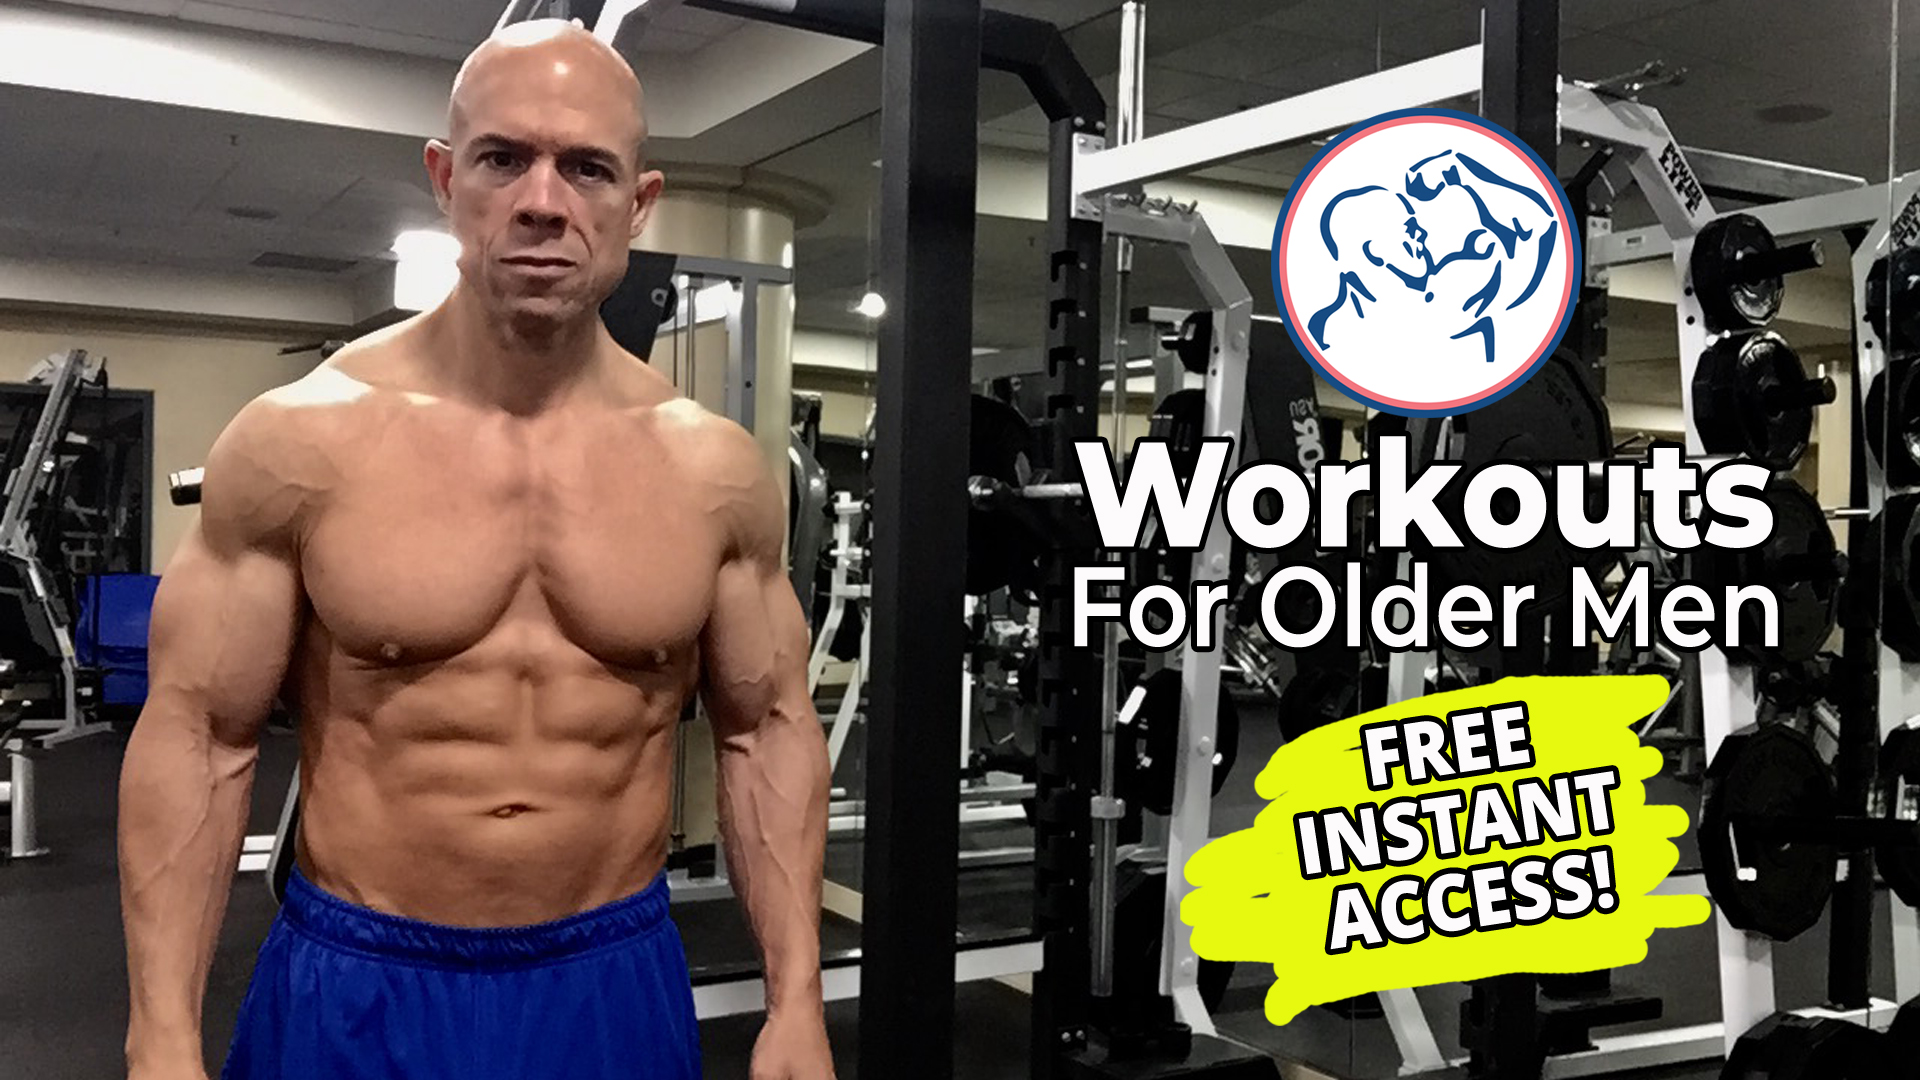 mf workouts for older men flash 2 How To Get Your Fitness Habits On Track